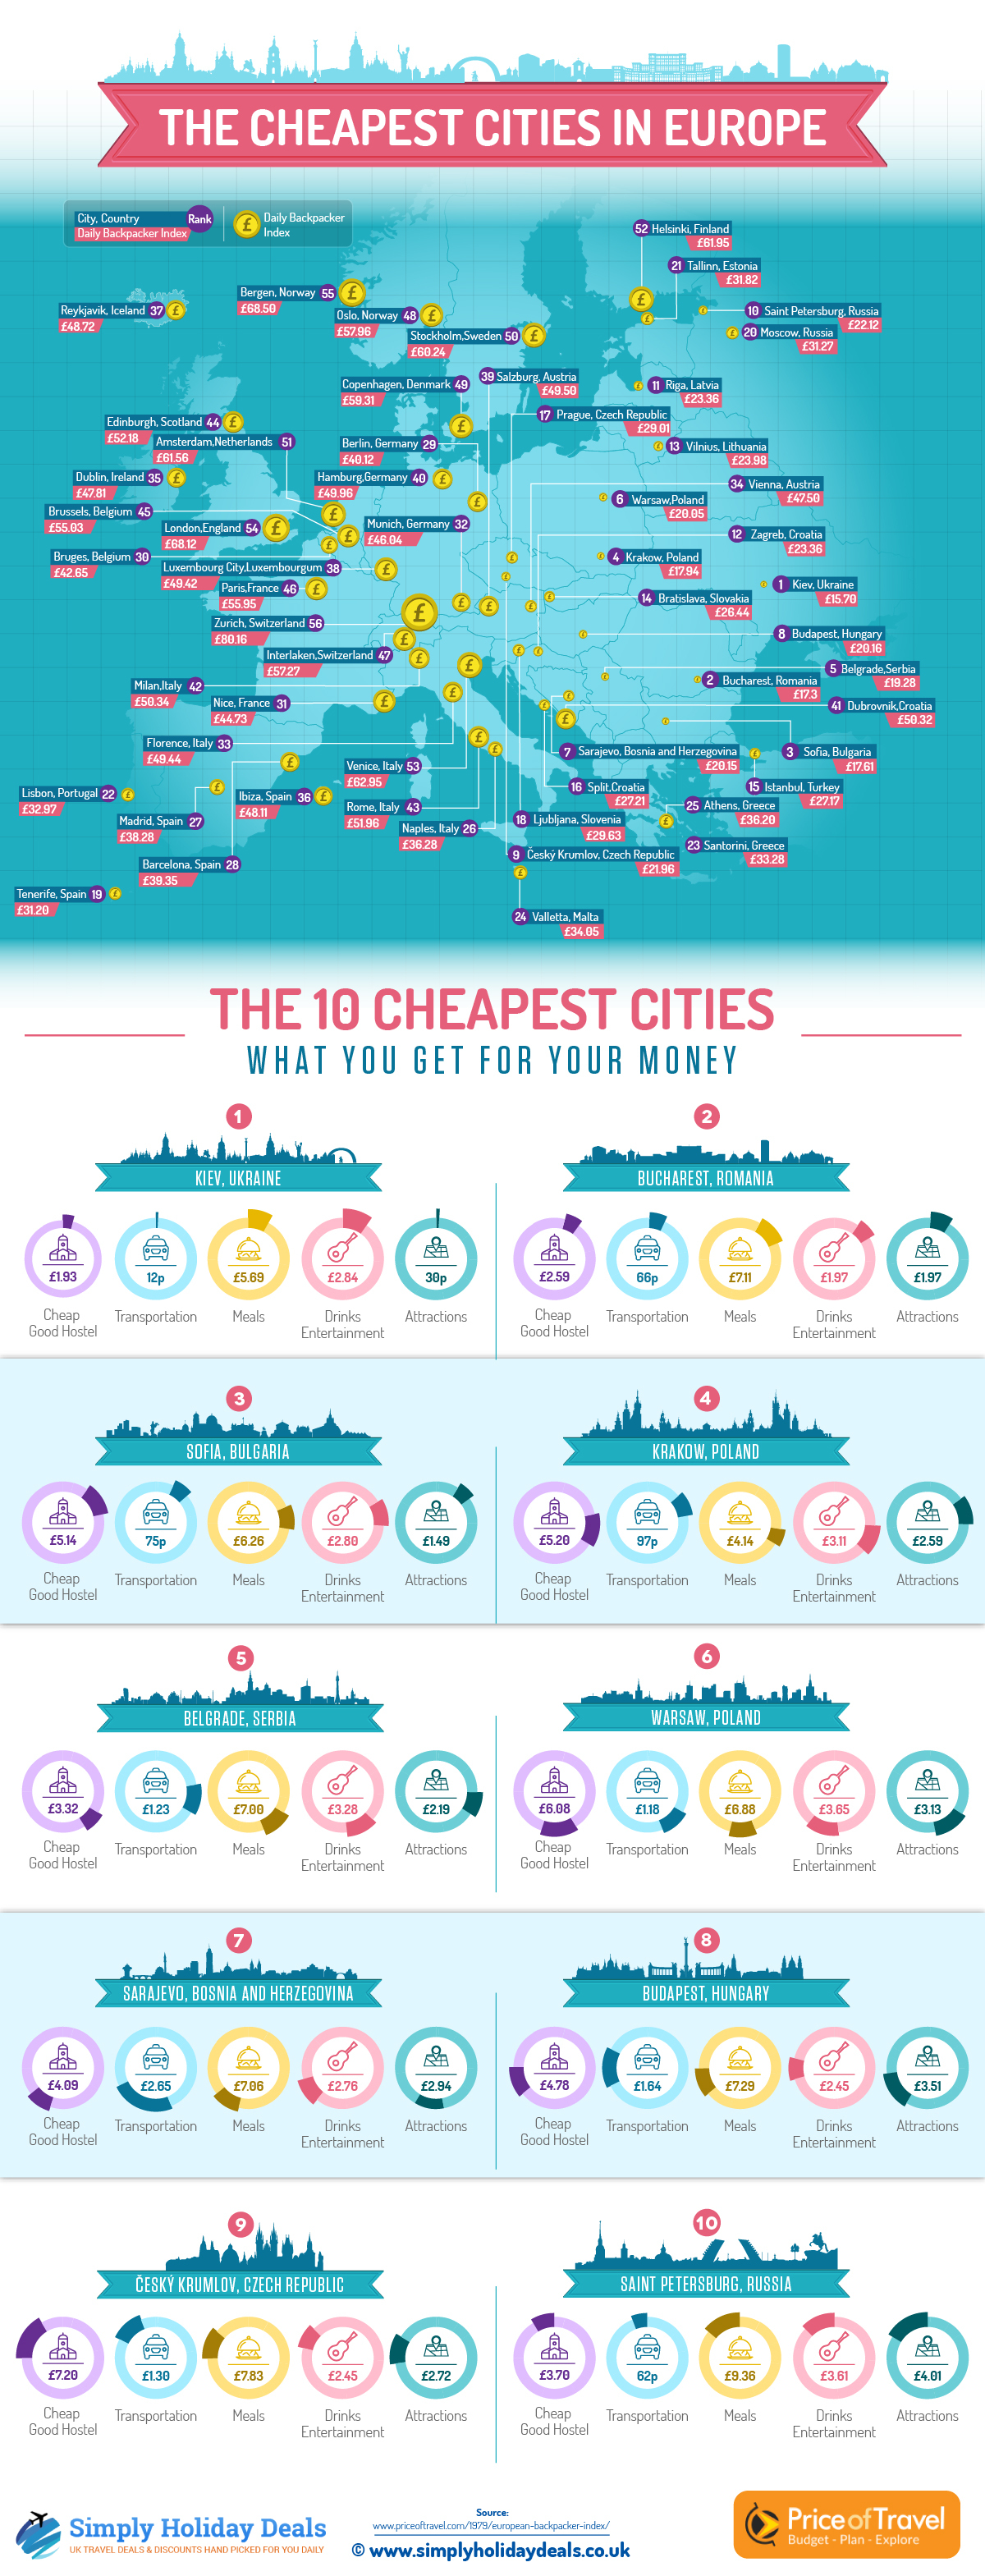 The Cheapest Cities In Europe To Travel To Travel - How to travel europe cheap